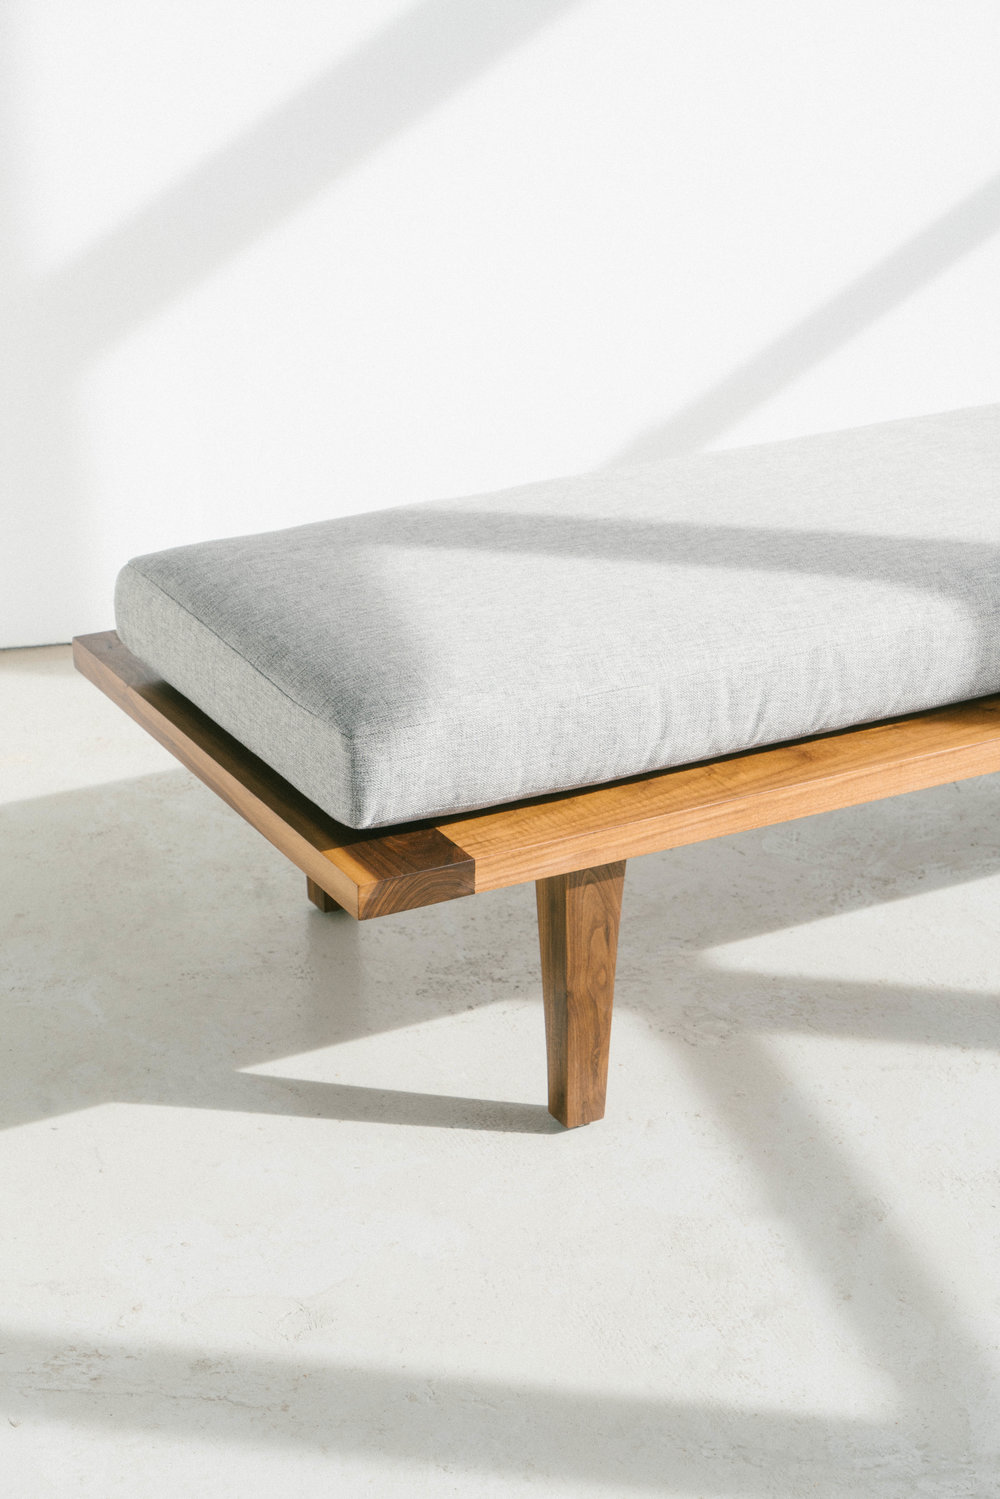 daybed11-s.jpg